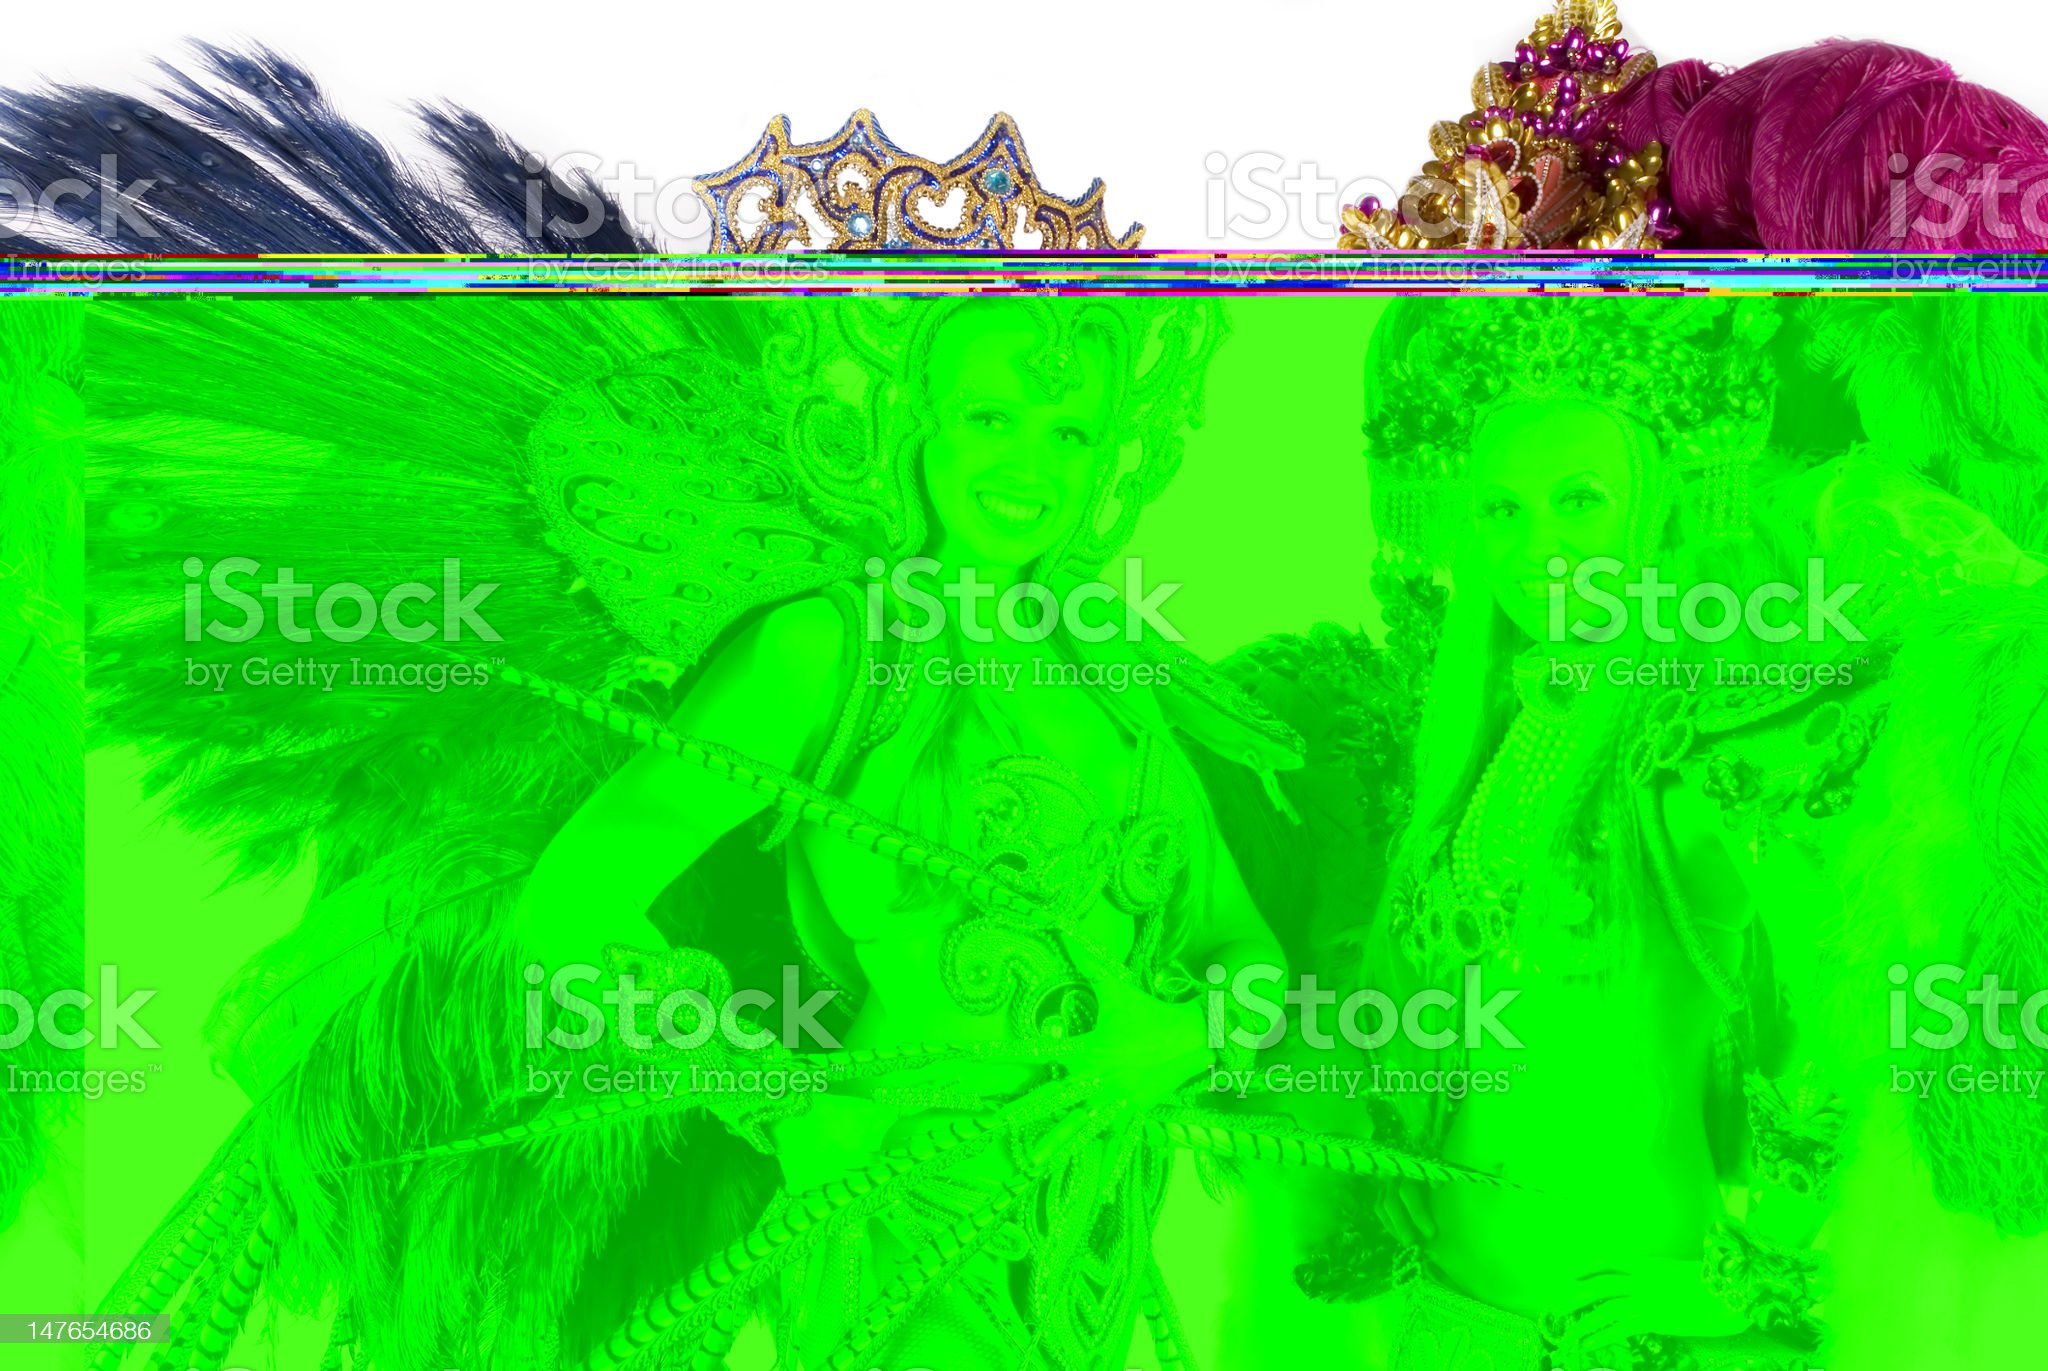 Carnival dancers in festival costumes and smiling royalty-free stock photo